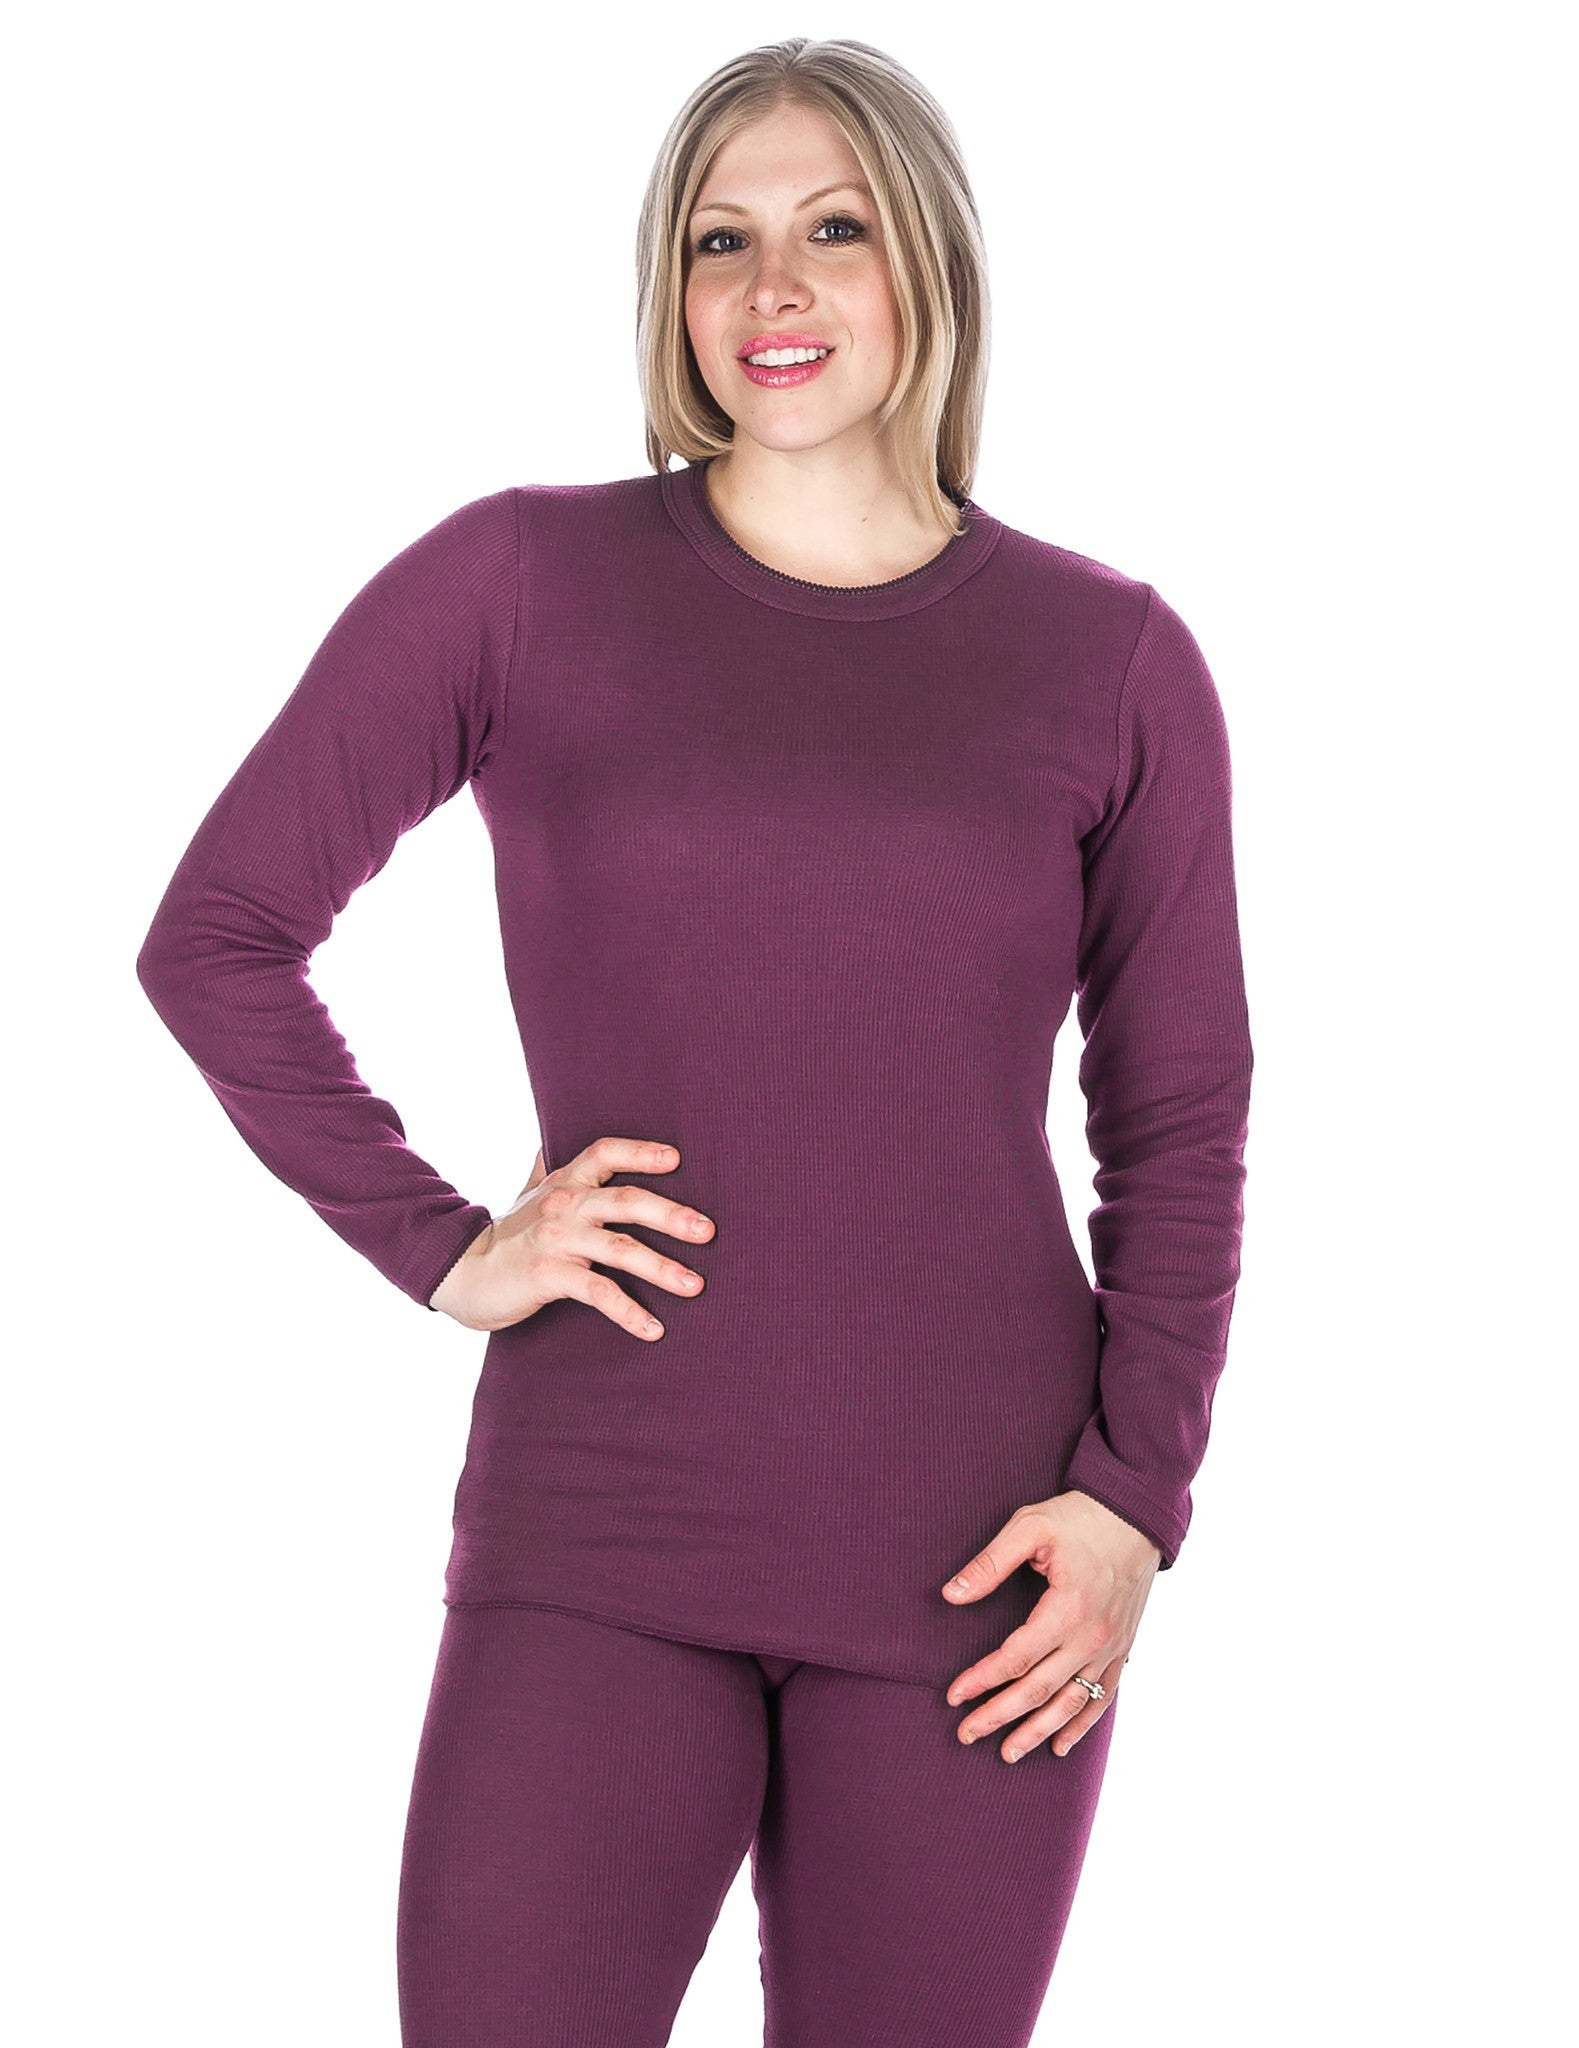 Women's Extreme Cold Waffle Knit Thermal Crew Top